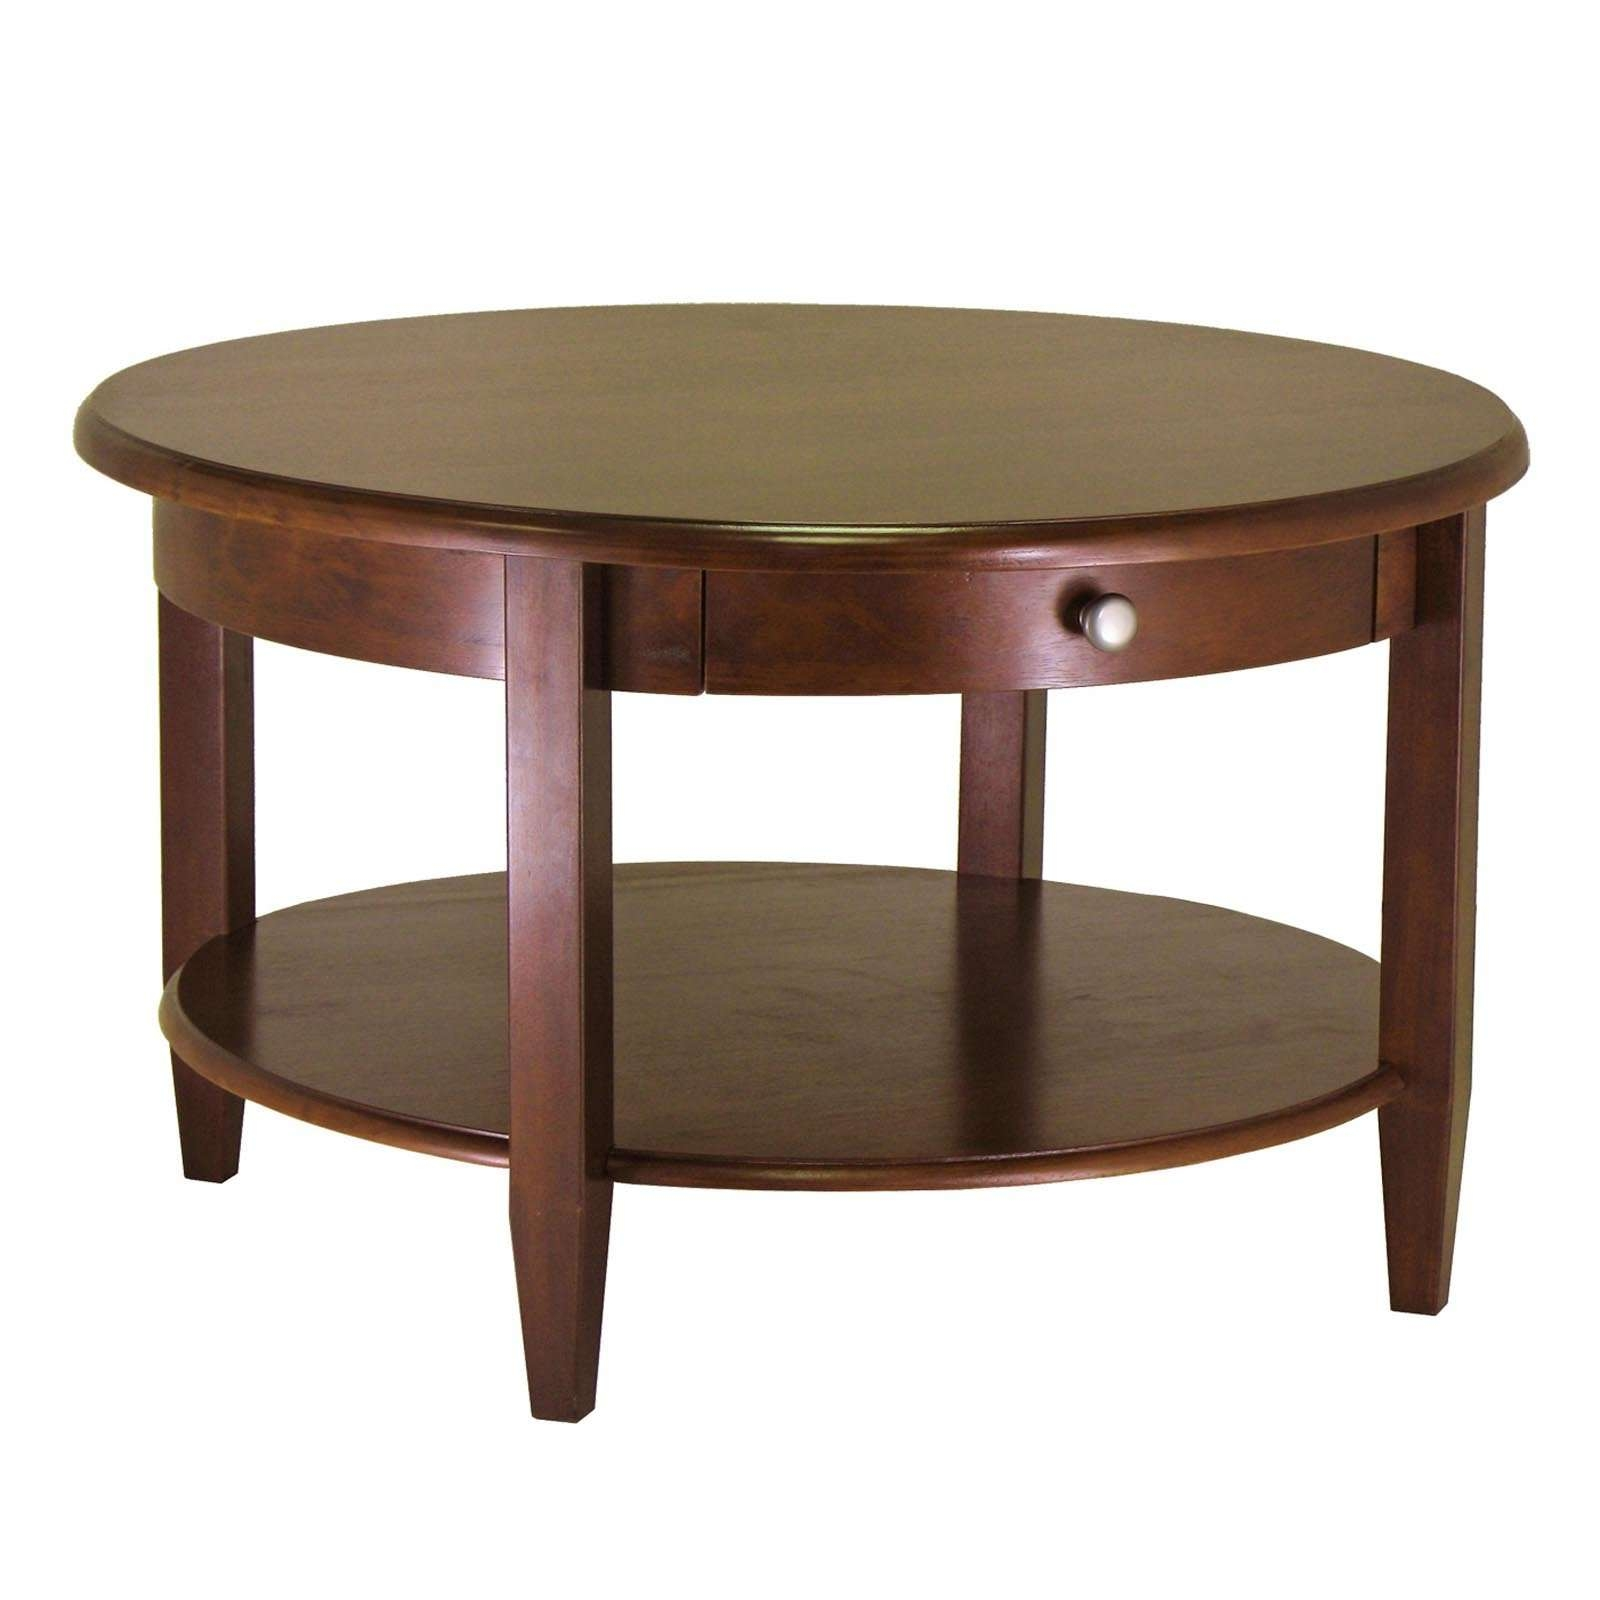 Coffee Tables : Round Table Coffee Glass Top Circle Square And Pertaining To Most Recently Released Small Circle Coffee Tables (View 4 of 20)